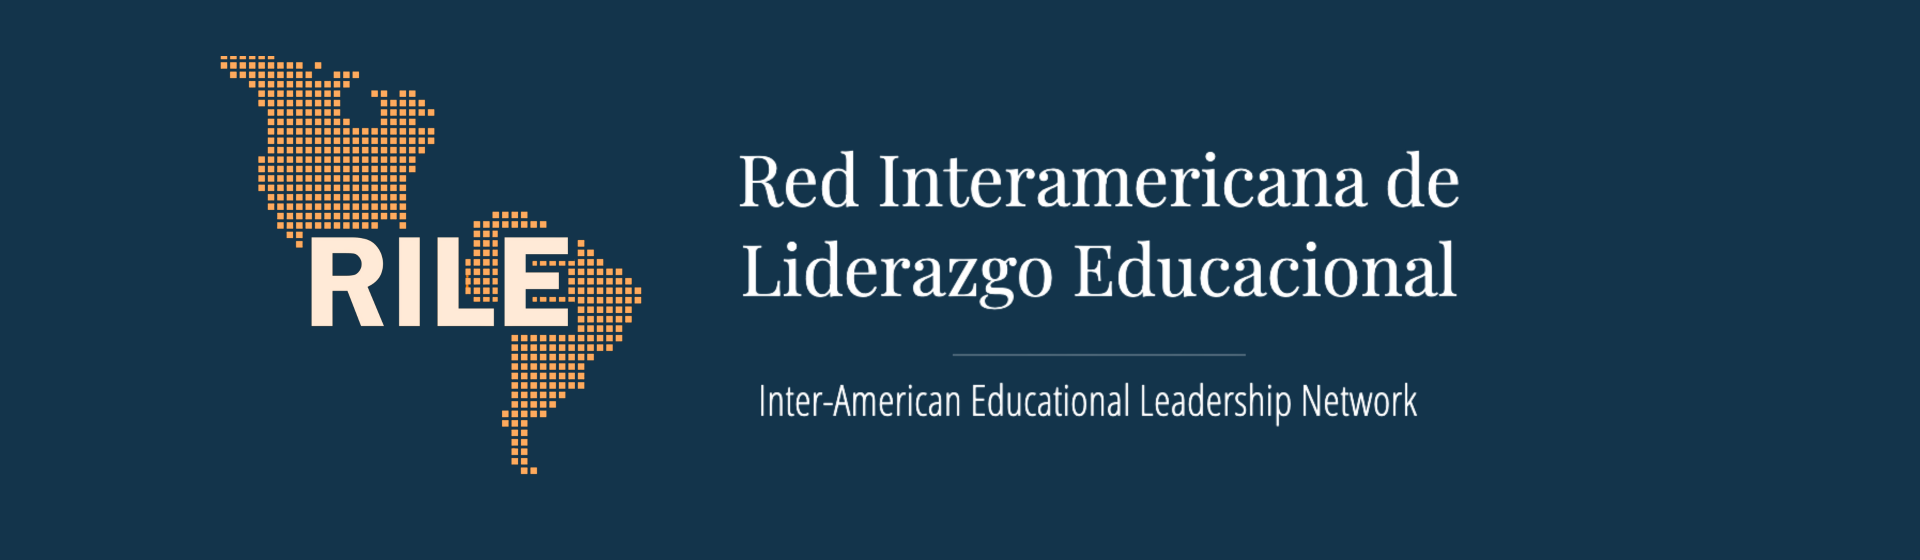 Red Interamericana de Liderazgo Educacional